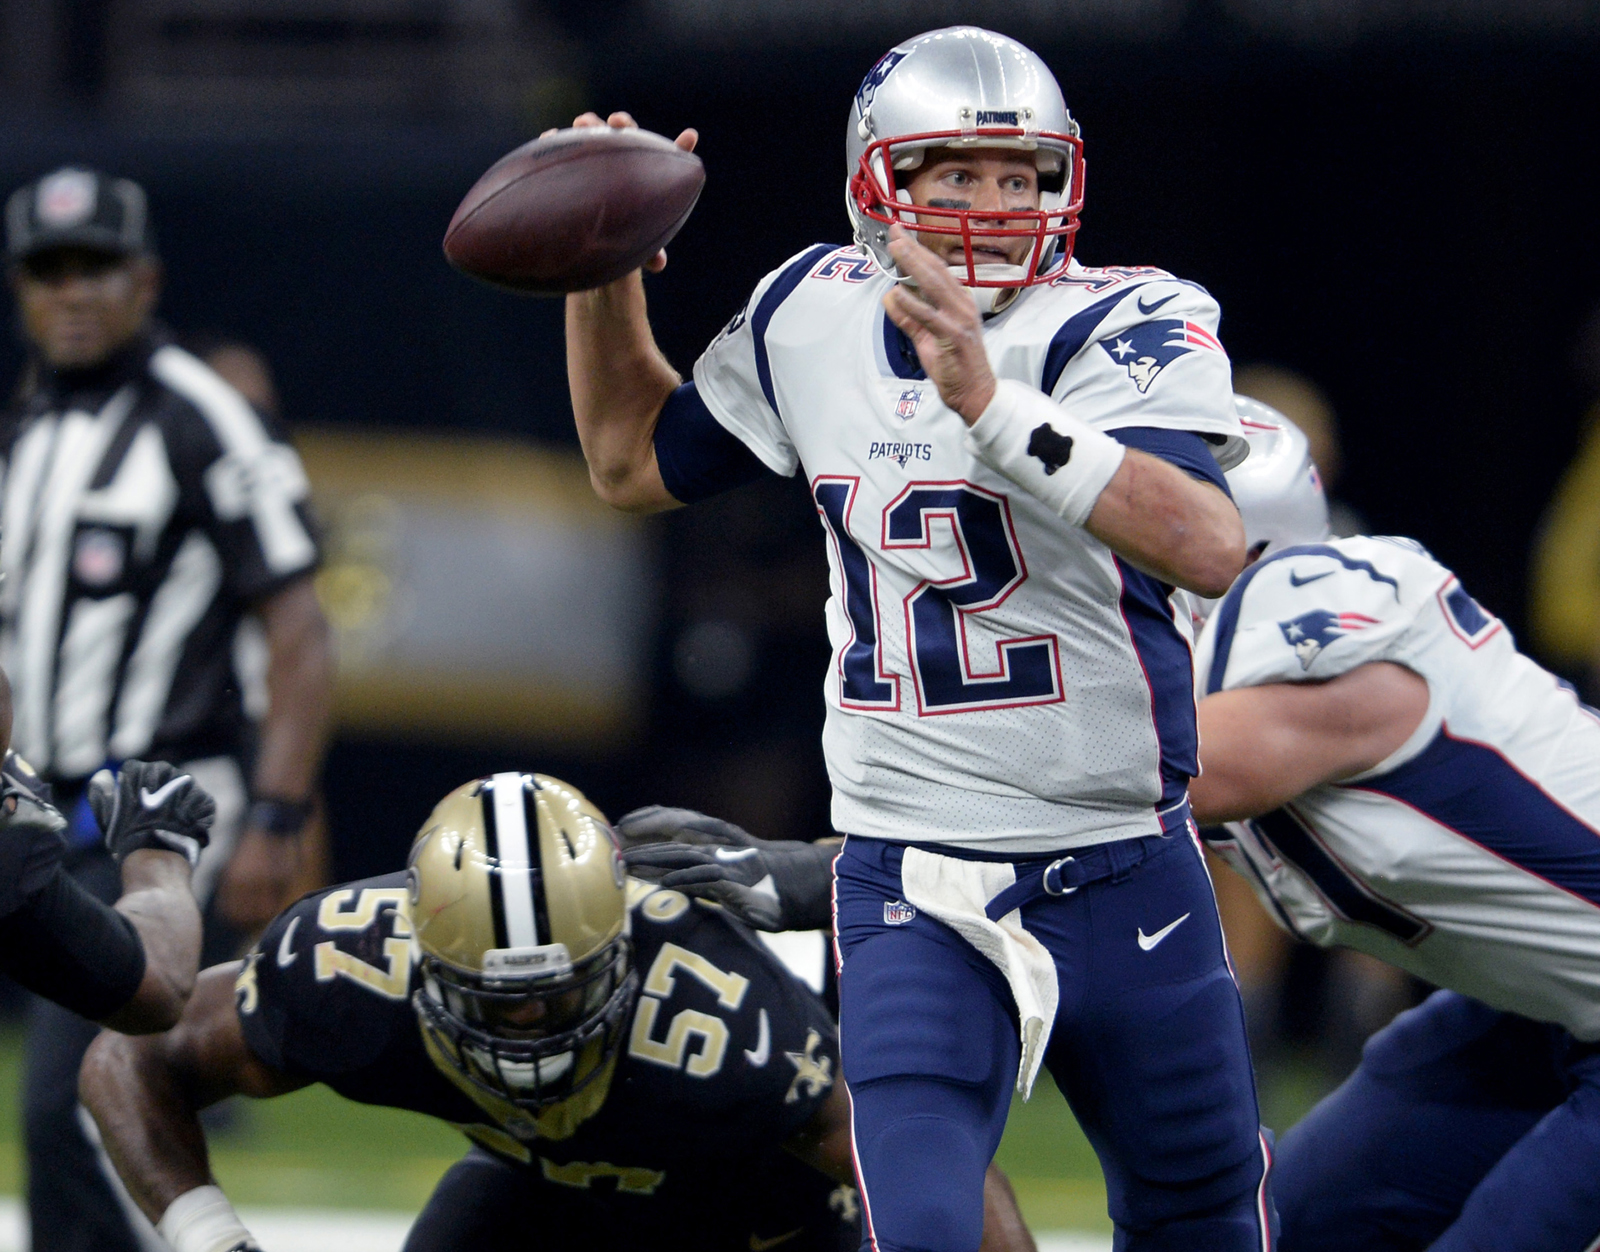 New England Patriots quarterback Tom Brady (12) passes under pressure from New Orleans Saints defensive end Alex Okafor (57) in the first half of an NFL football game in New Orleans, Sunday. AP NEWSWIRE